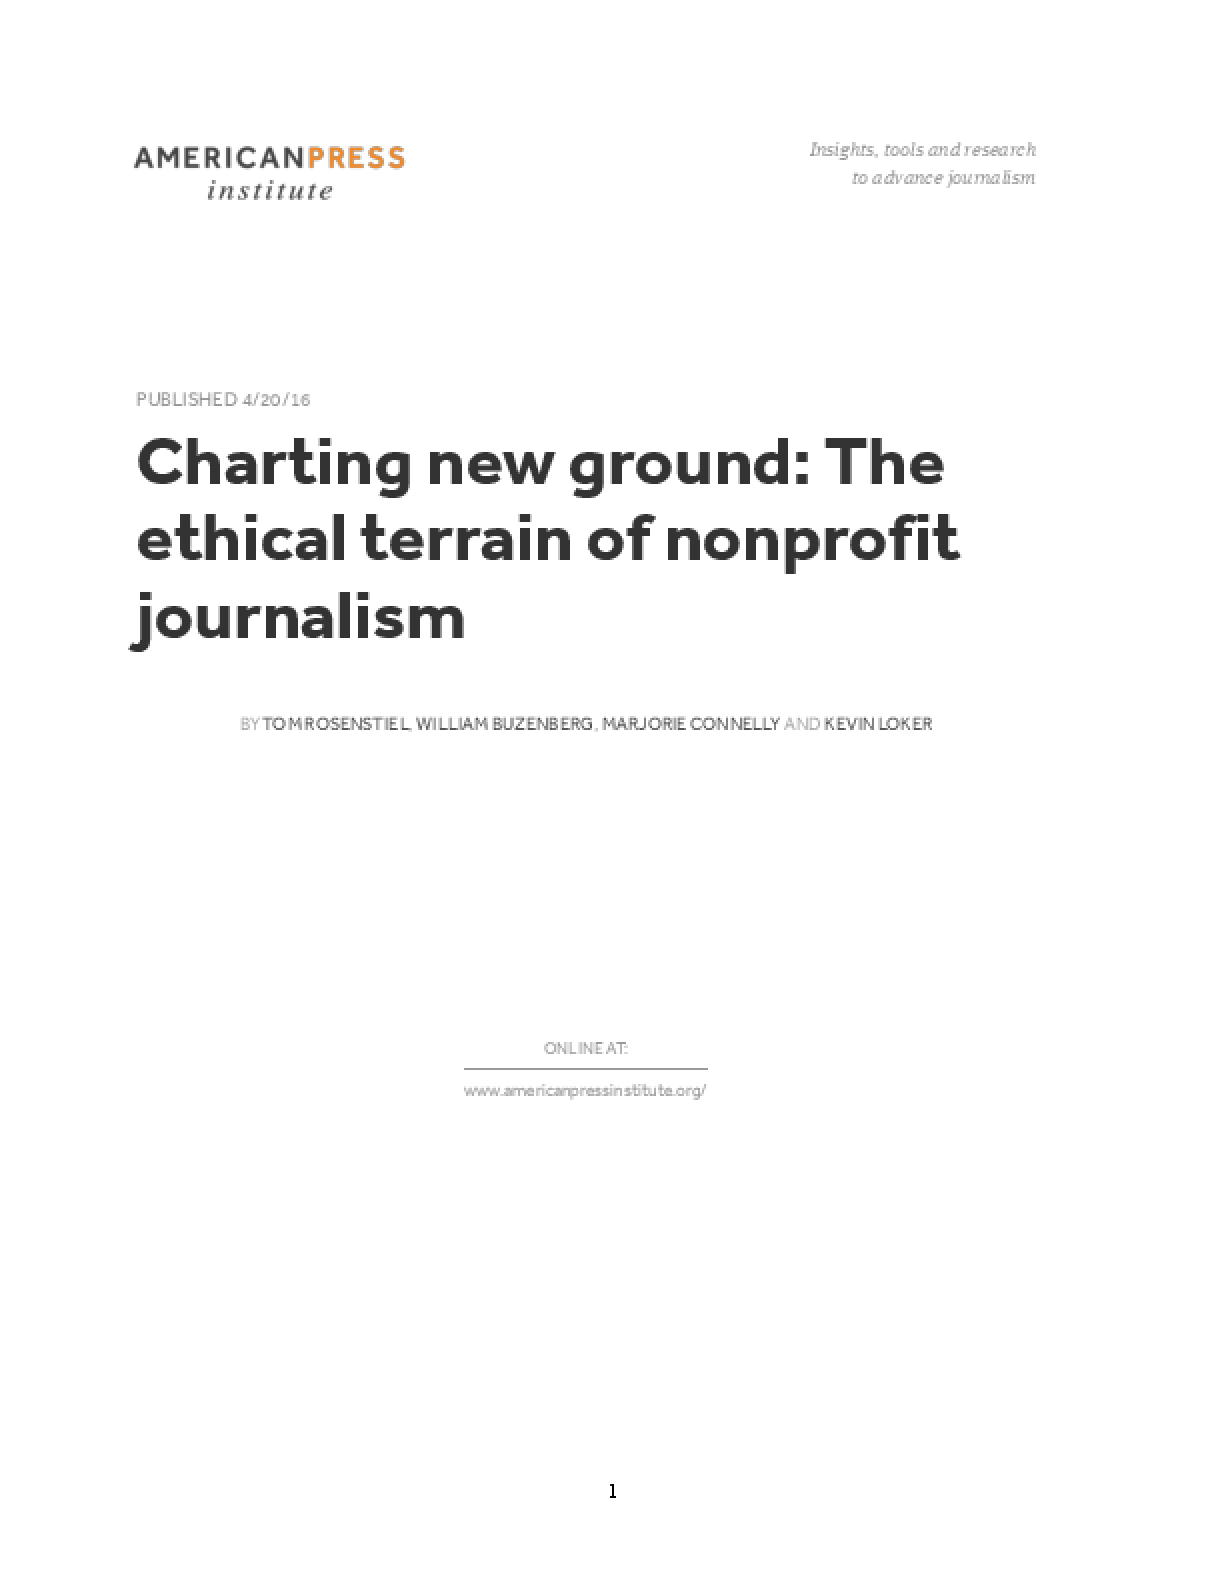 Charting New Ground: The Ethical Terrain of Nonprofit Journalism